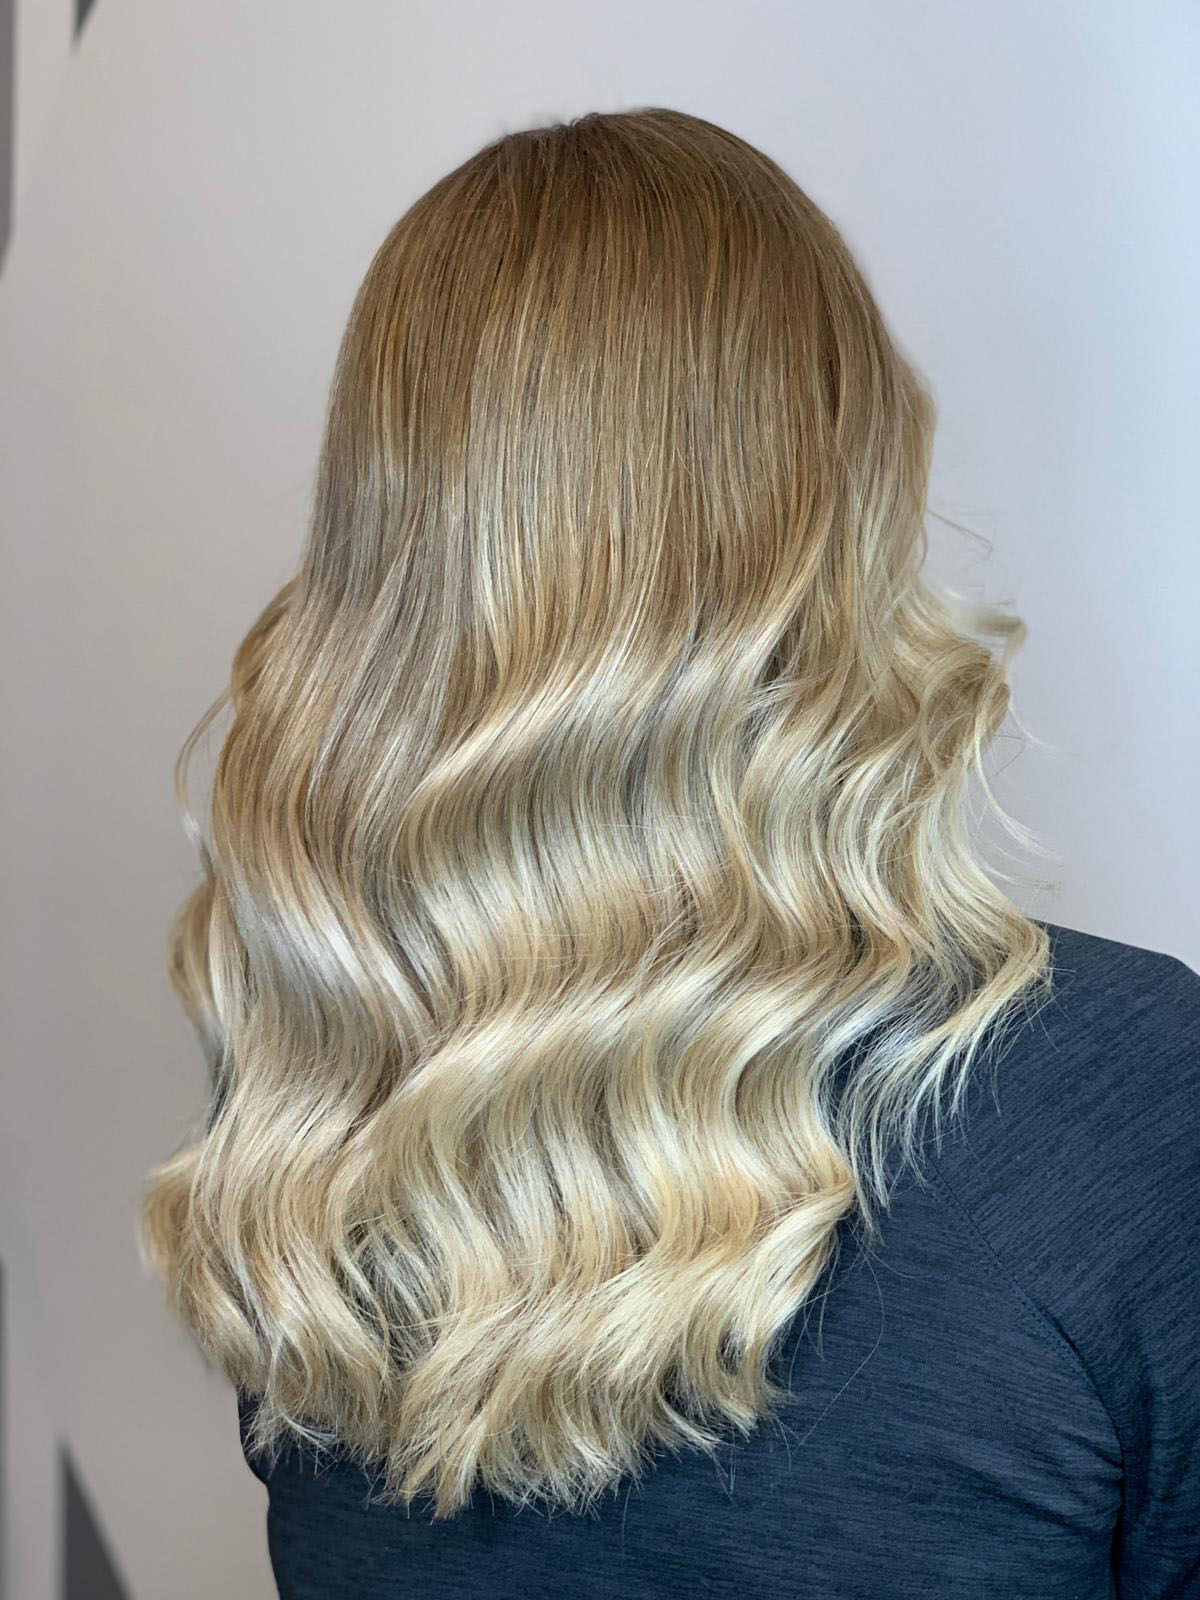 blonde-wave-hair-styling-chicago